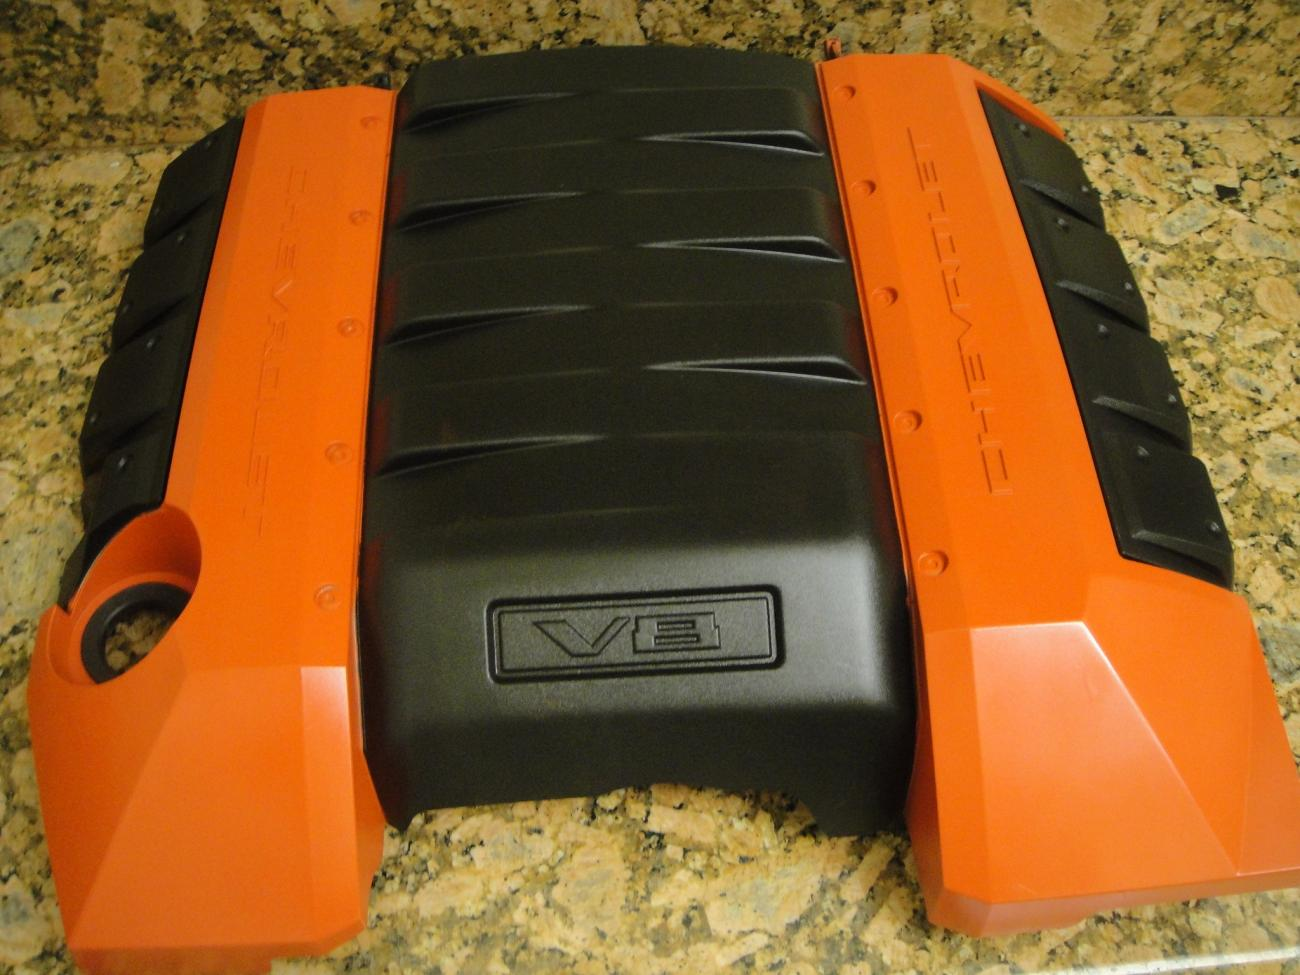 2010 camaro ss orange engine cover for sale camaro5. Black Bedroom Furniture Sets. Home Design Ideas